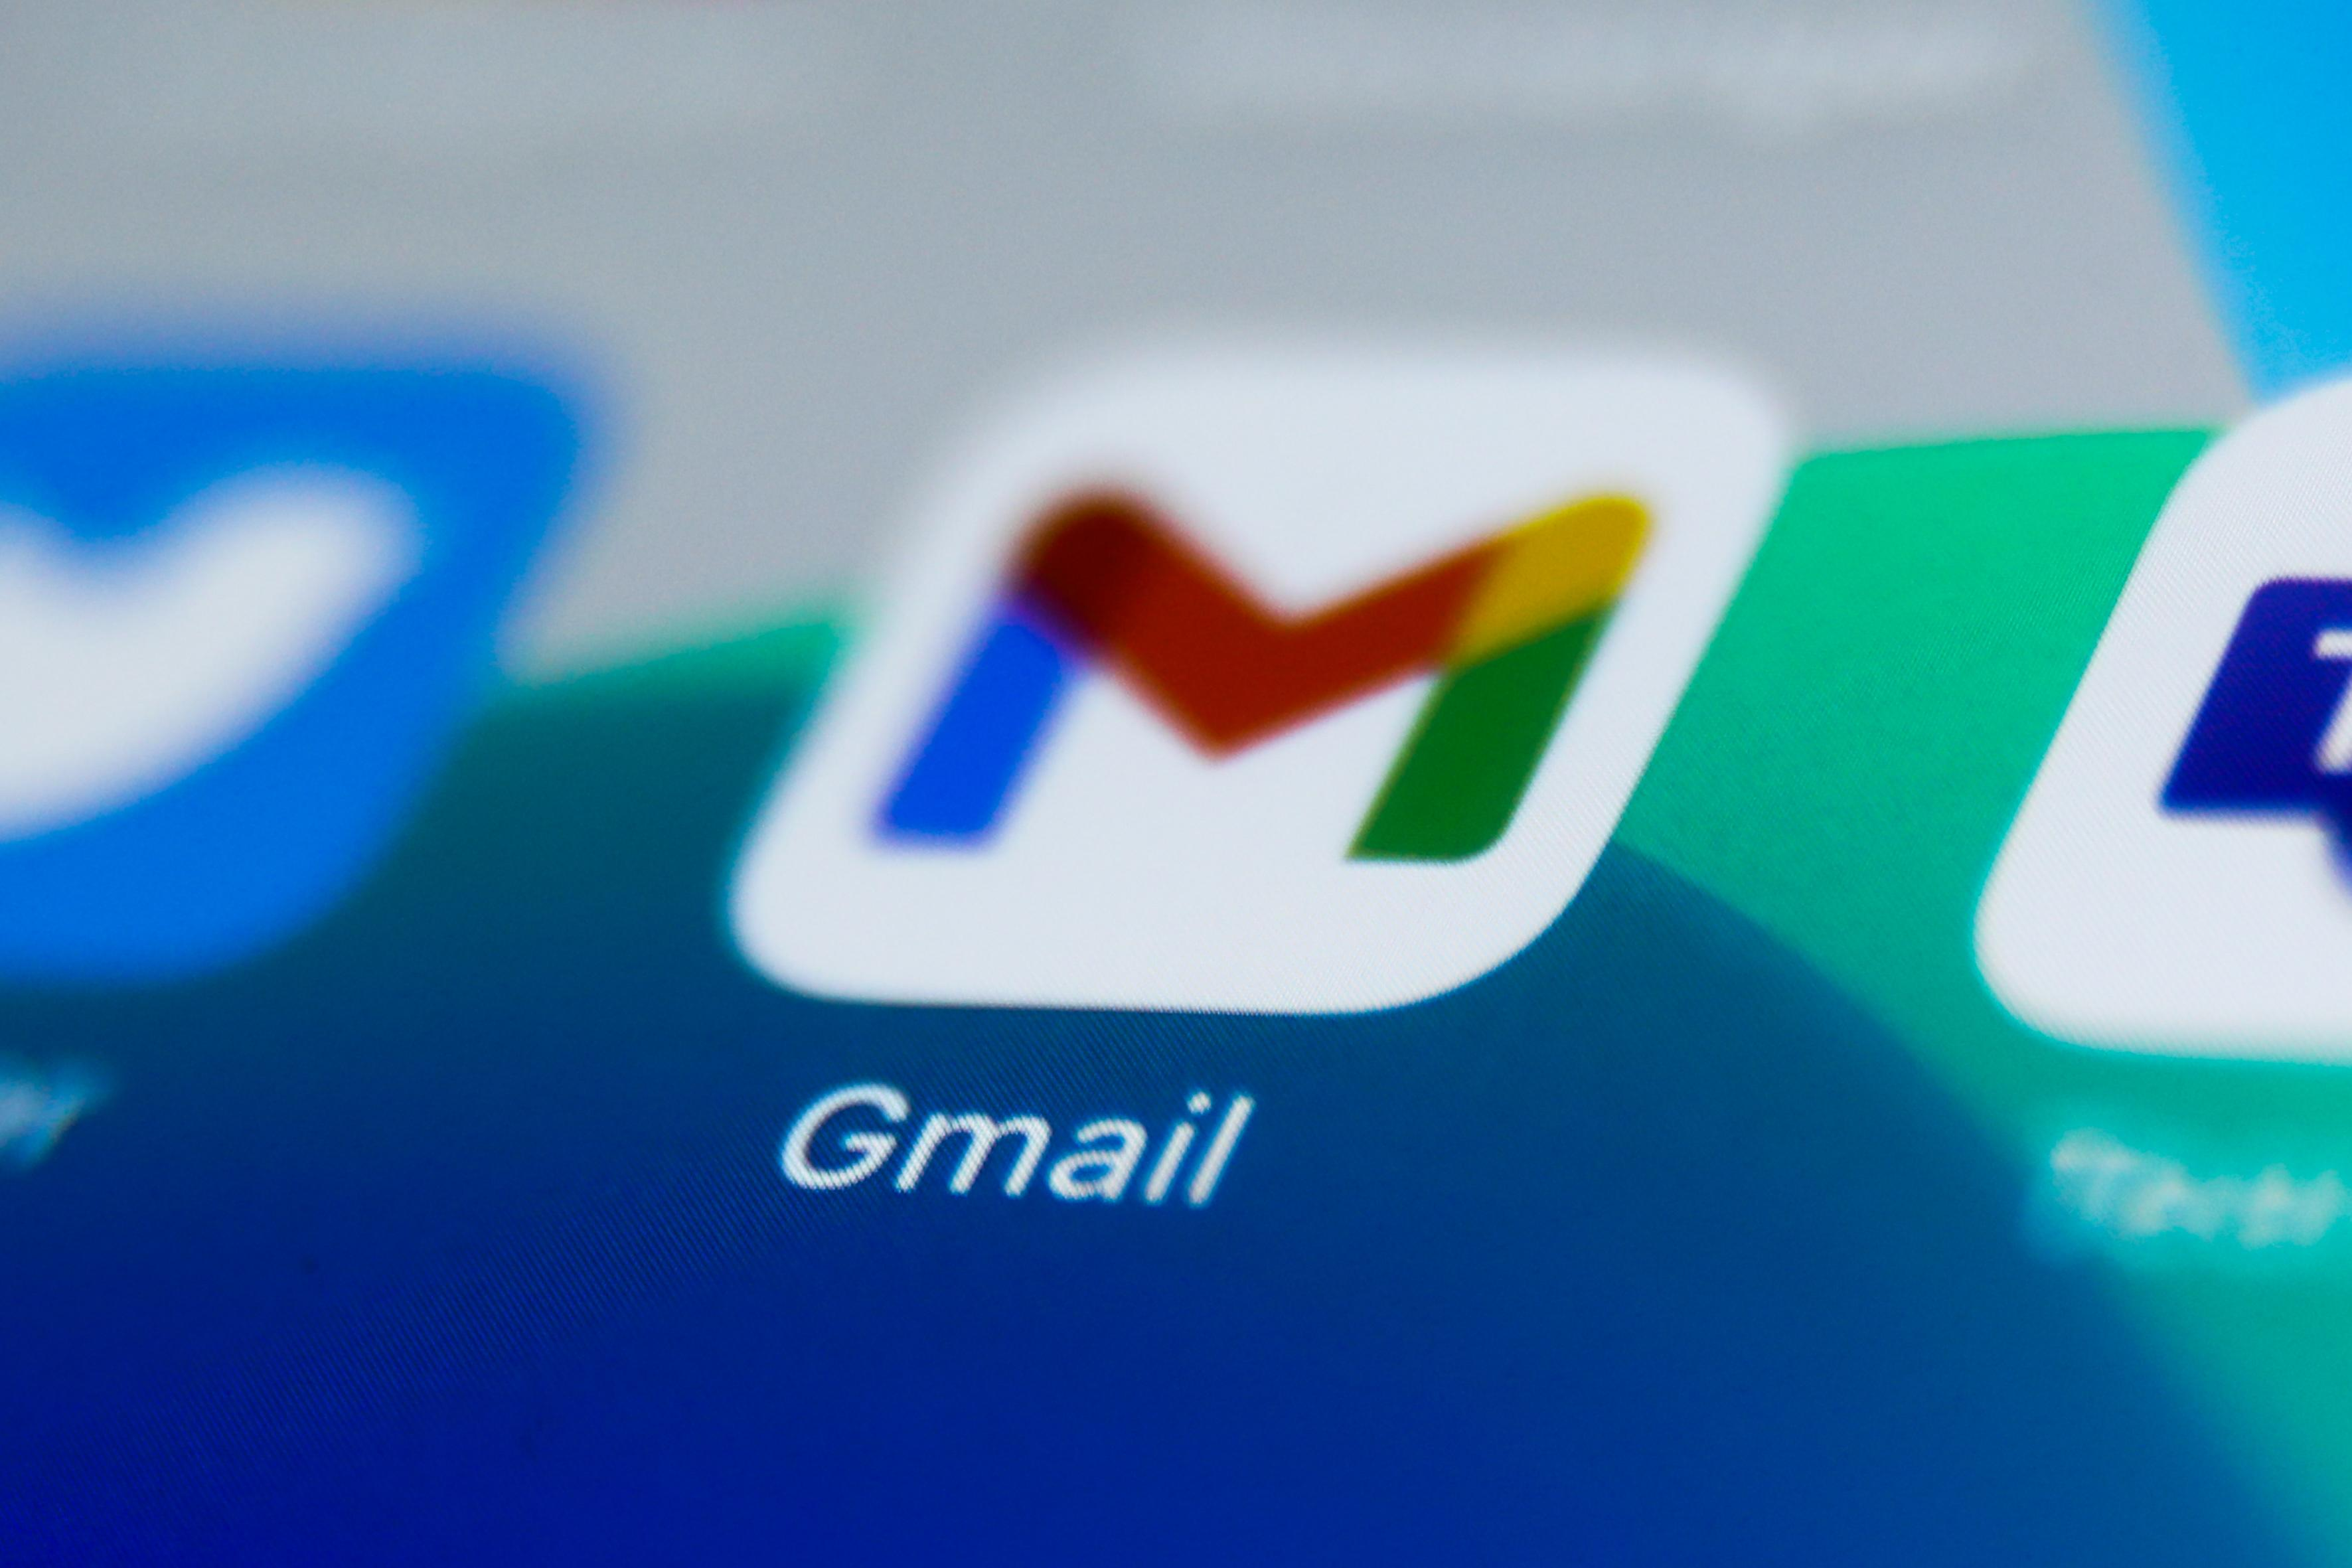 Google updates Gmail and other iOS apps for the first time in months - Engadget